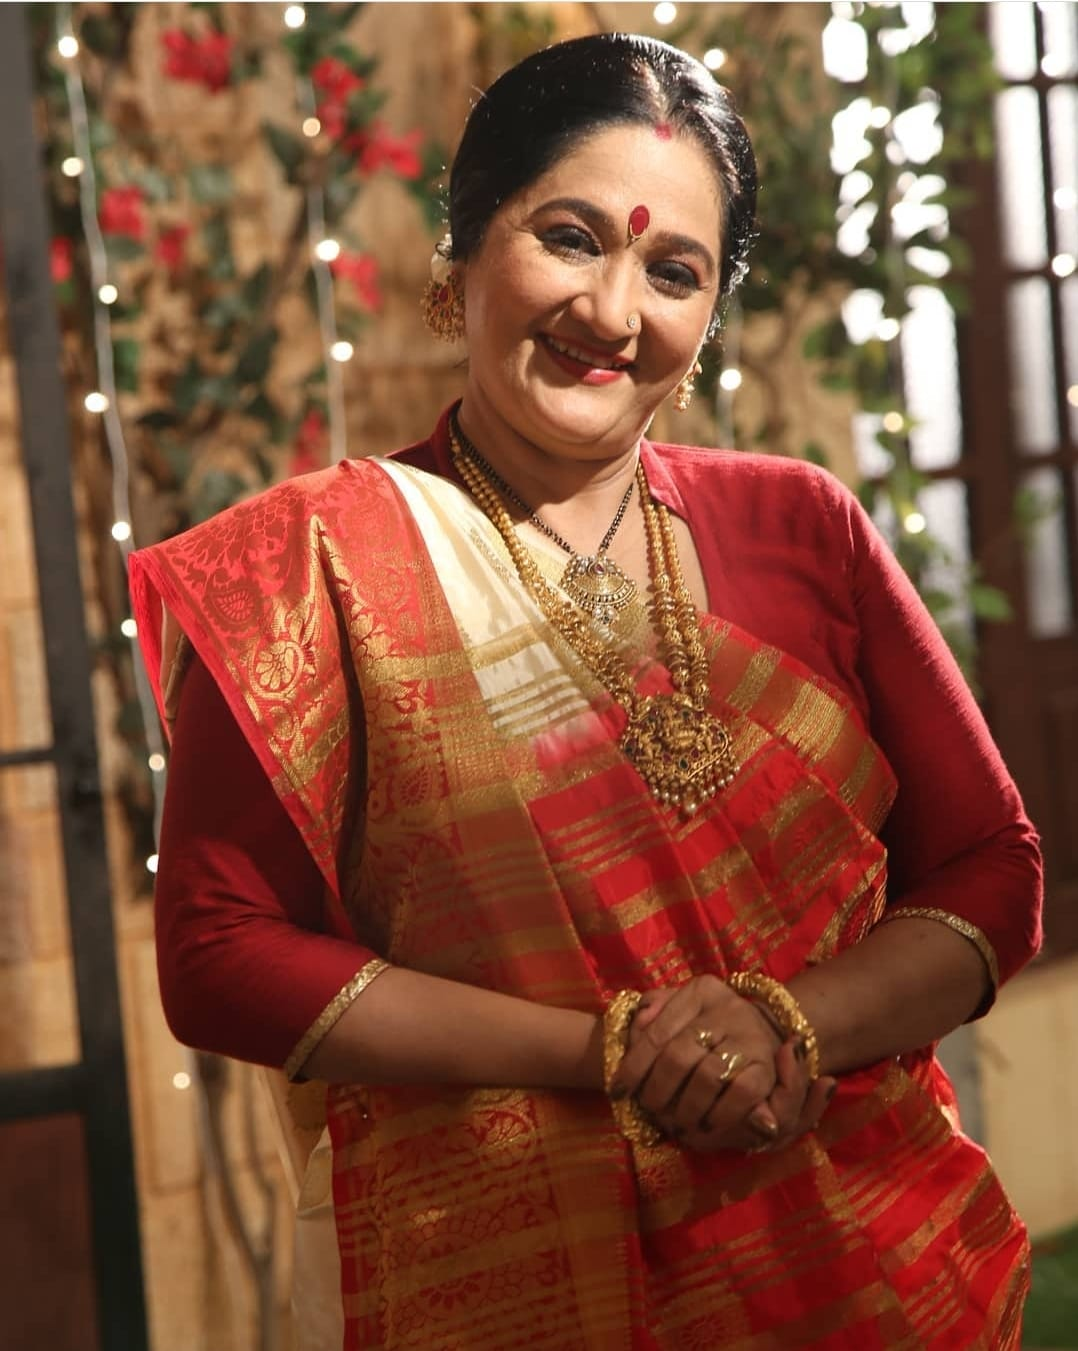 Anupamaa actor Alpana Buch, who plays the role of Baa says 'the audience can expect some extremely interesting changes in the show'